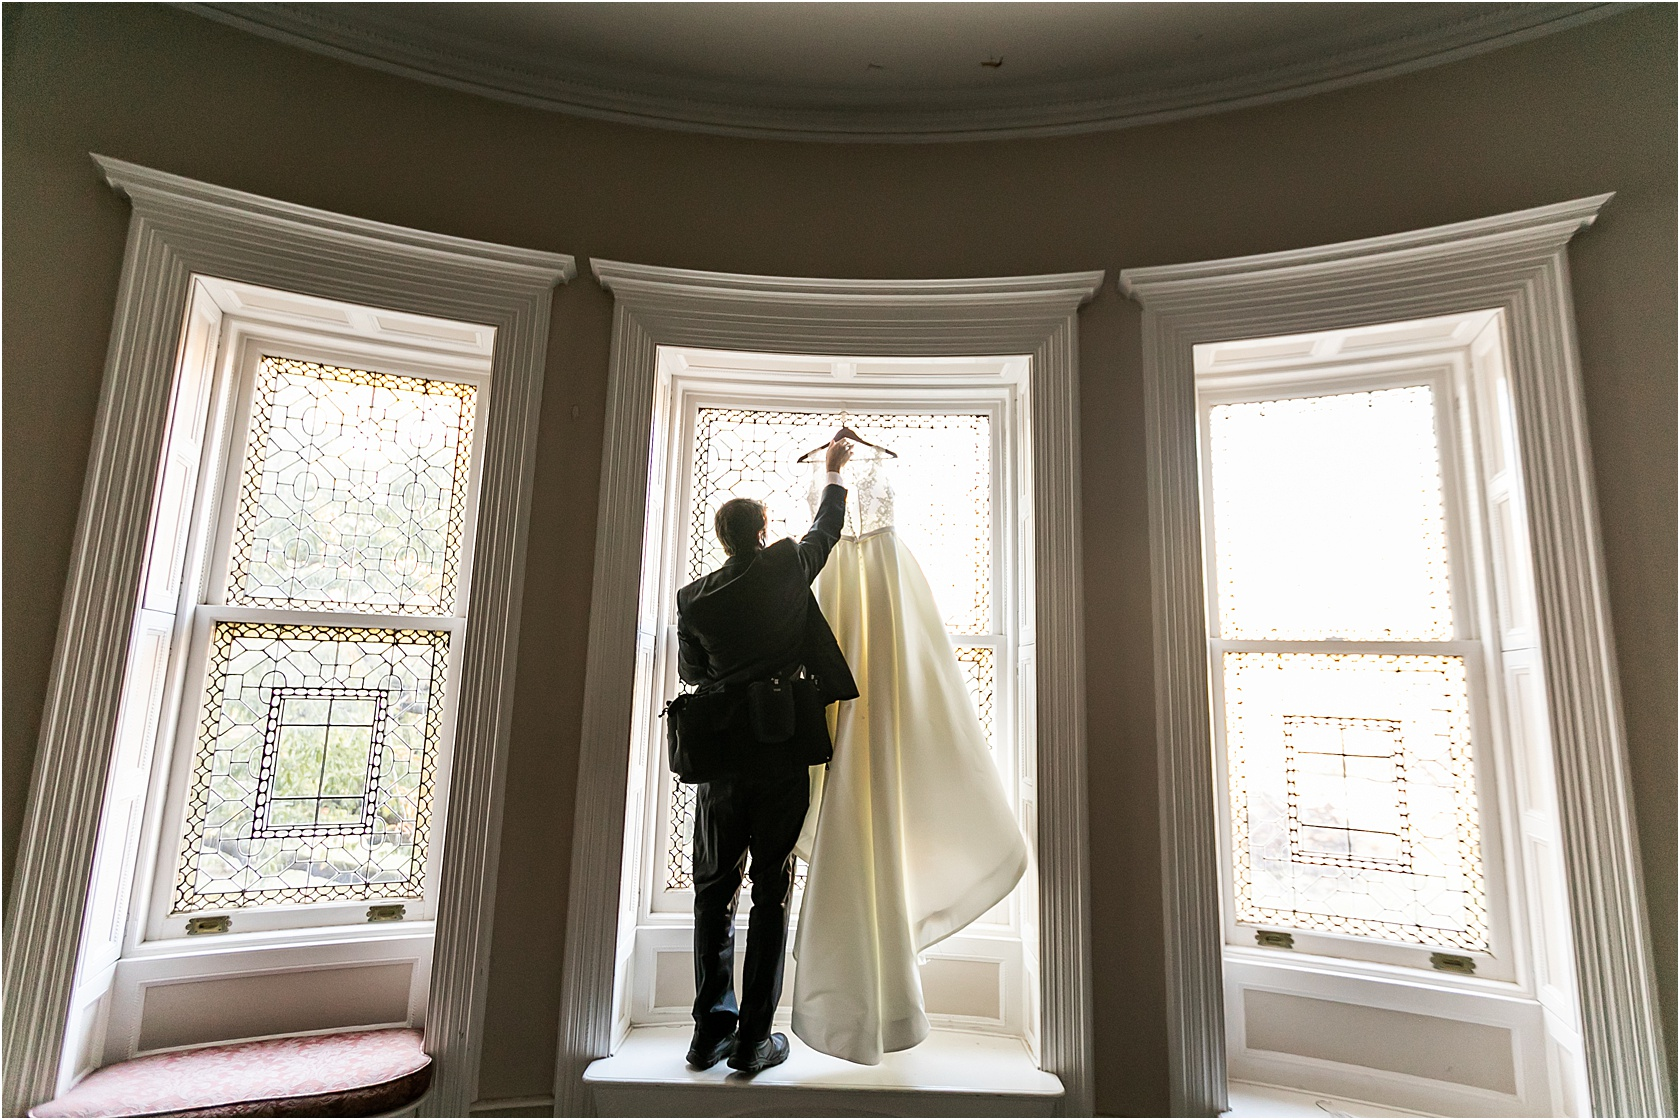 The day starts with details. We can't even tell you how many doors, windows, dressers, fireplaces, mantels, staircases, or any other object we've hung a dress on. But it's always beautiful!